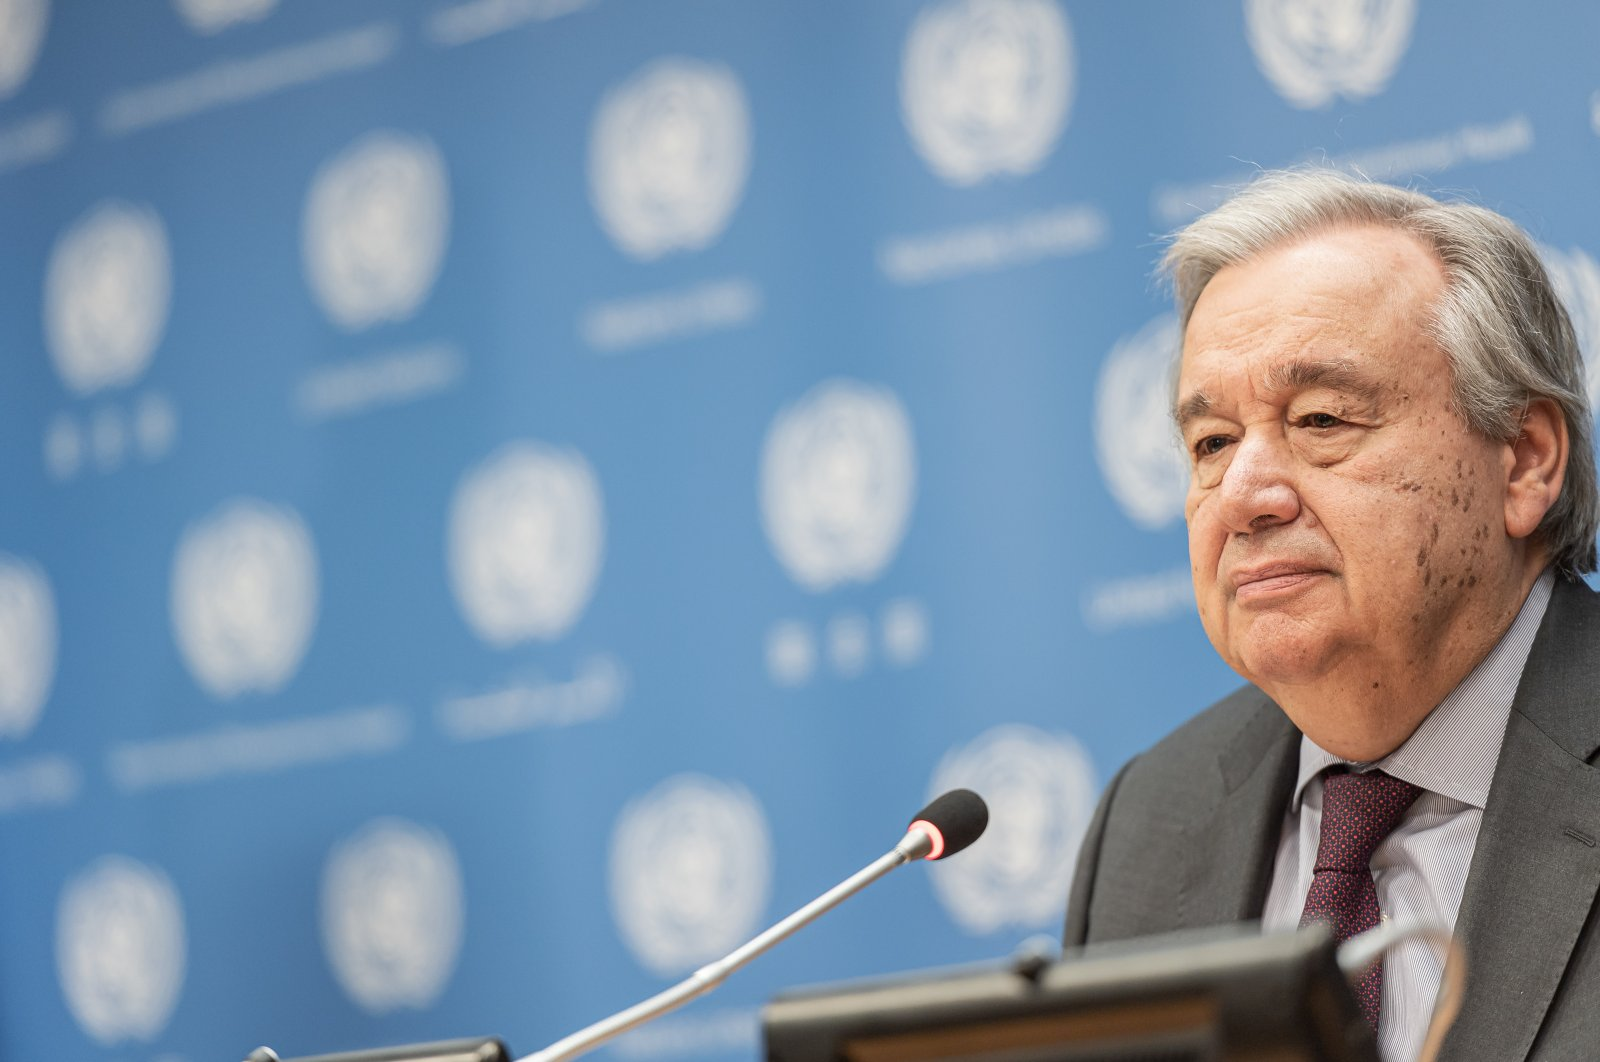 U.N. Secretary-General Antonio Guterres is seen during a briefing regarding the latest World Meteorological Organization (WMO) State of the Climate report at U.N. Headquarters in New York City, New York, U.S., March 10, 2020. (Reuters Photo)